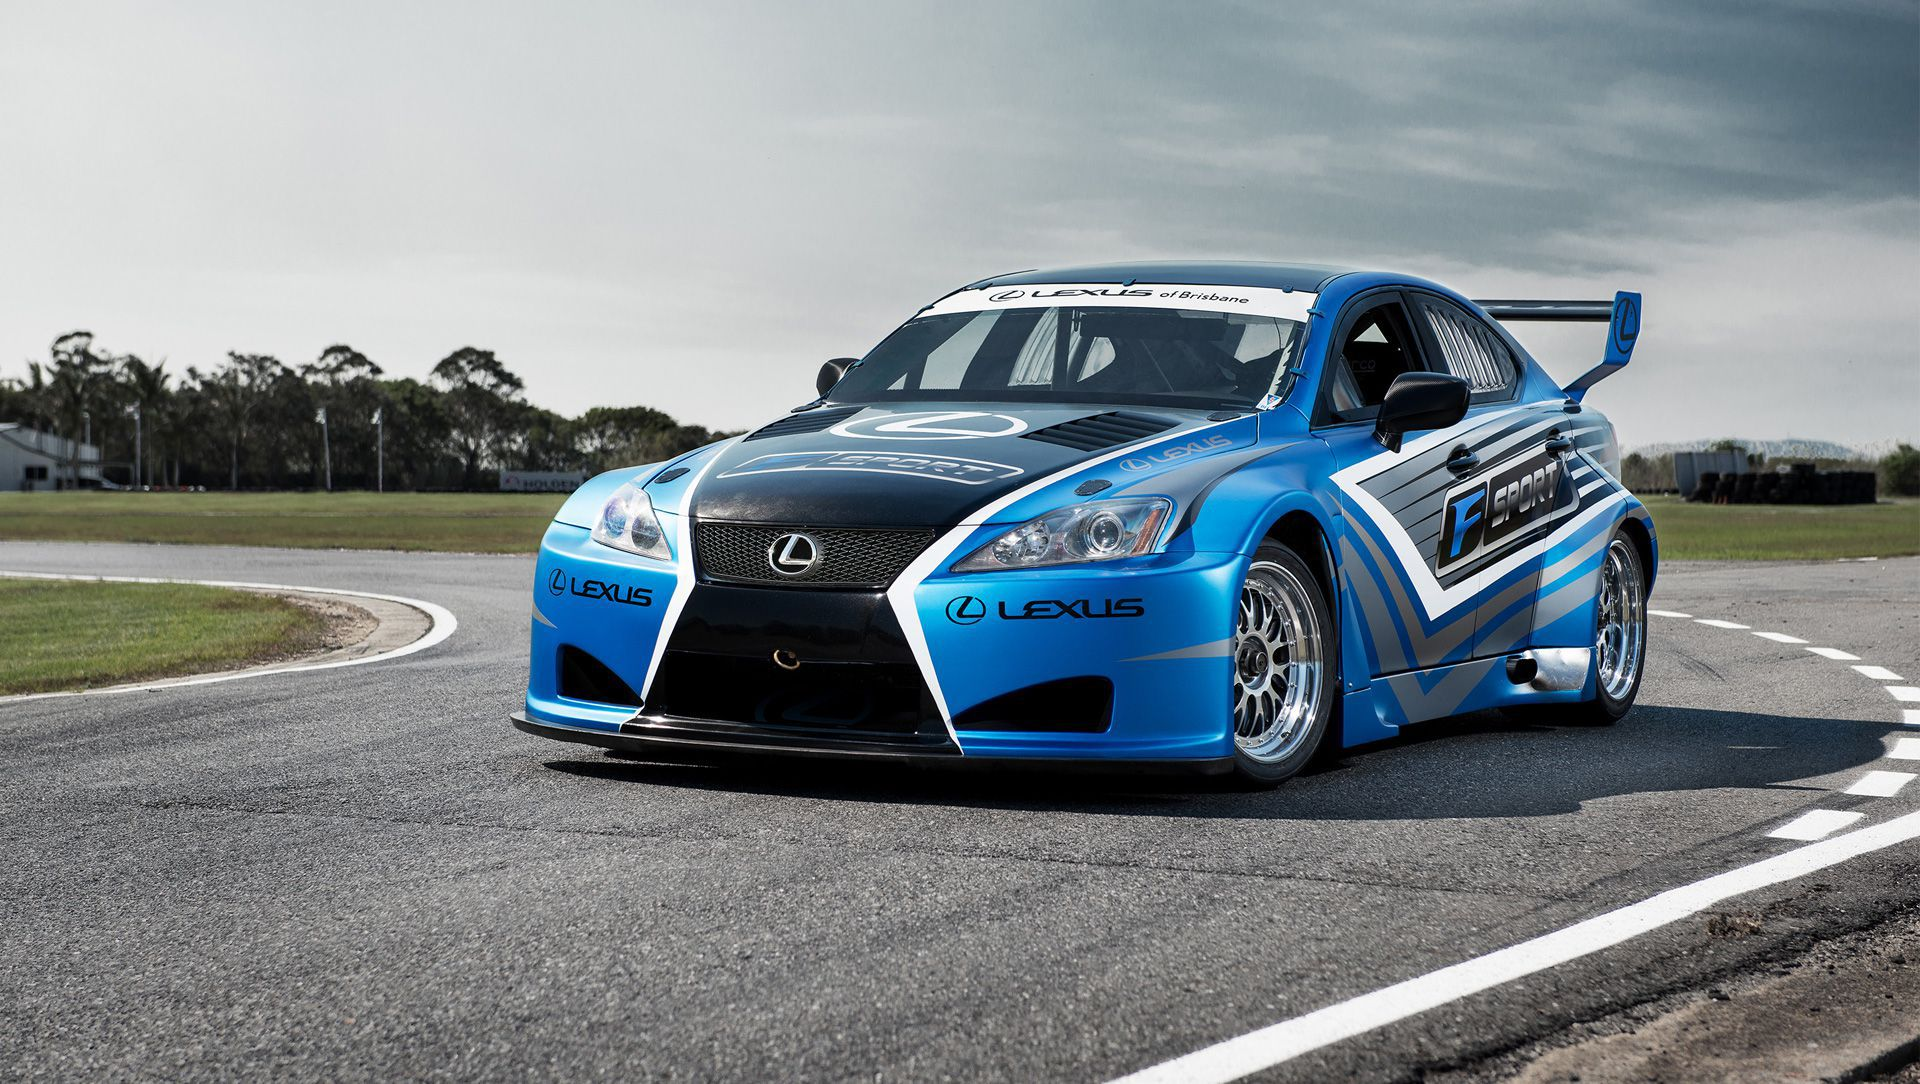 Lexus Races Into 2013 With V8 Supercar | Auto Moto | Japan Bullet